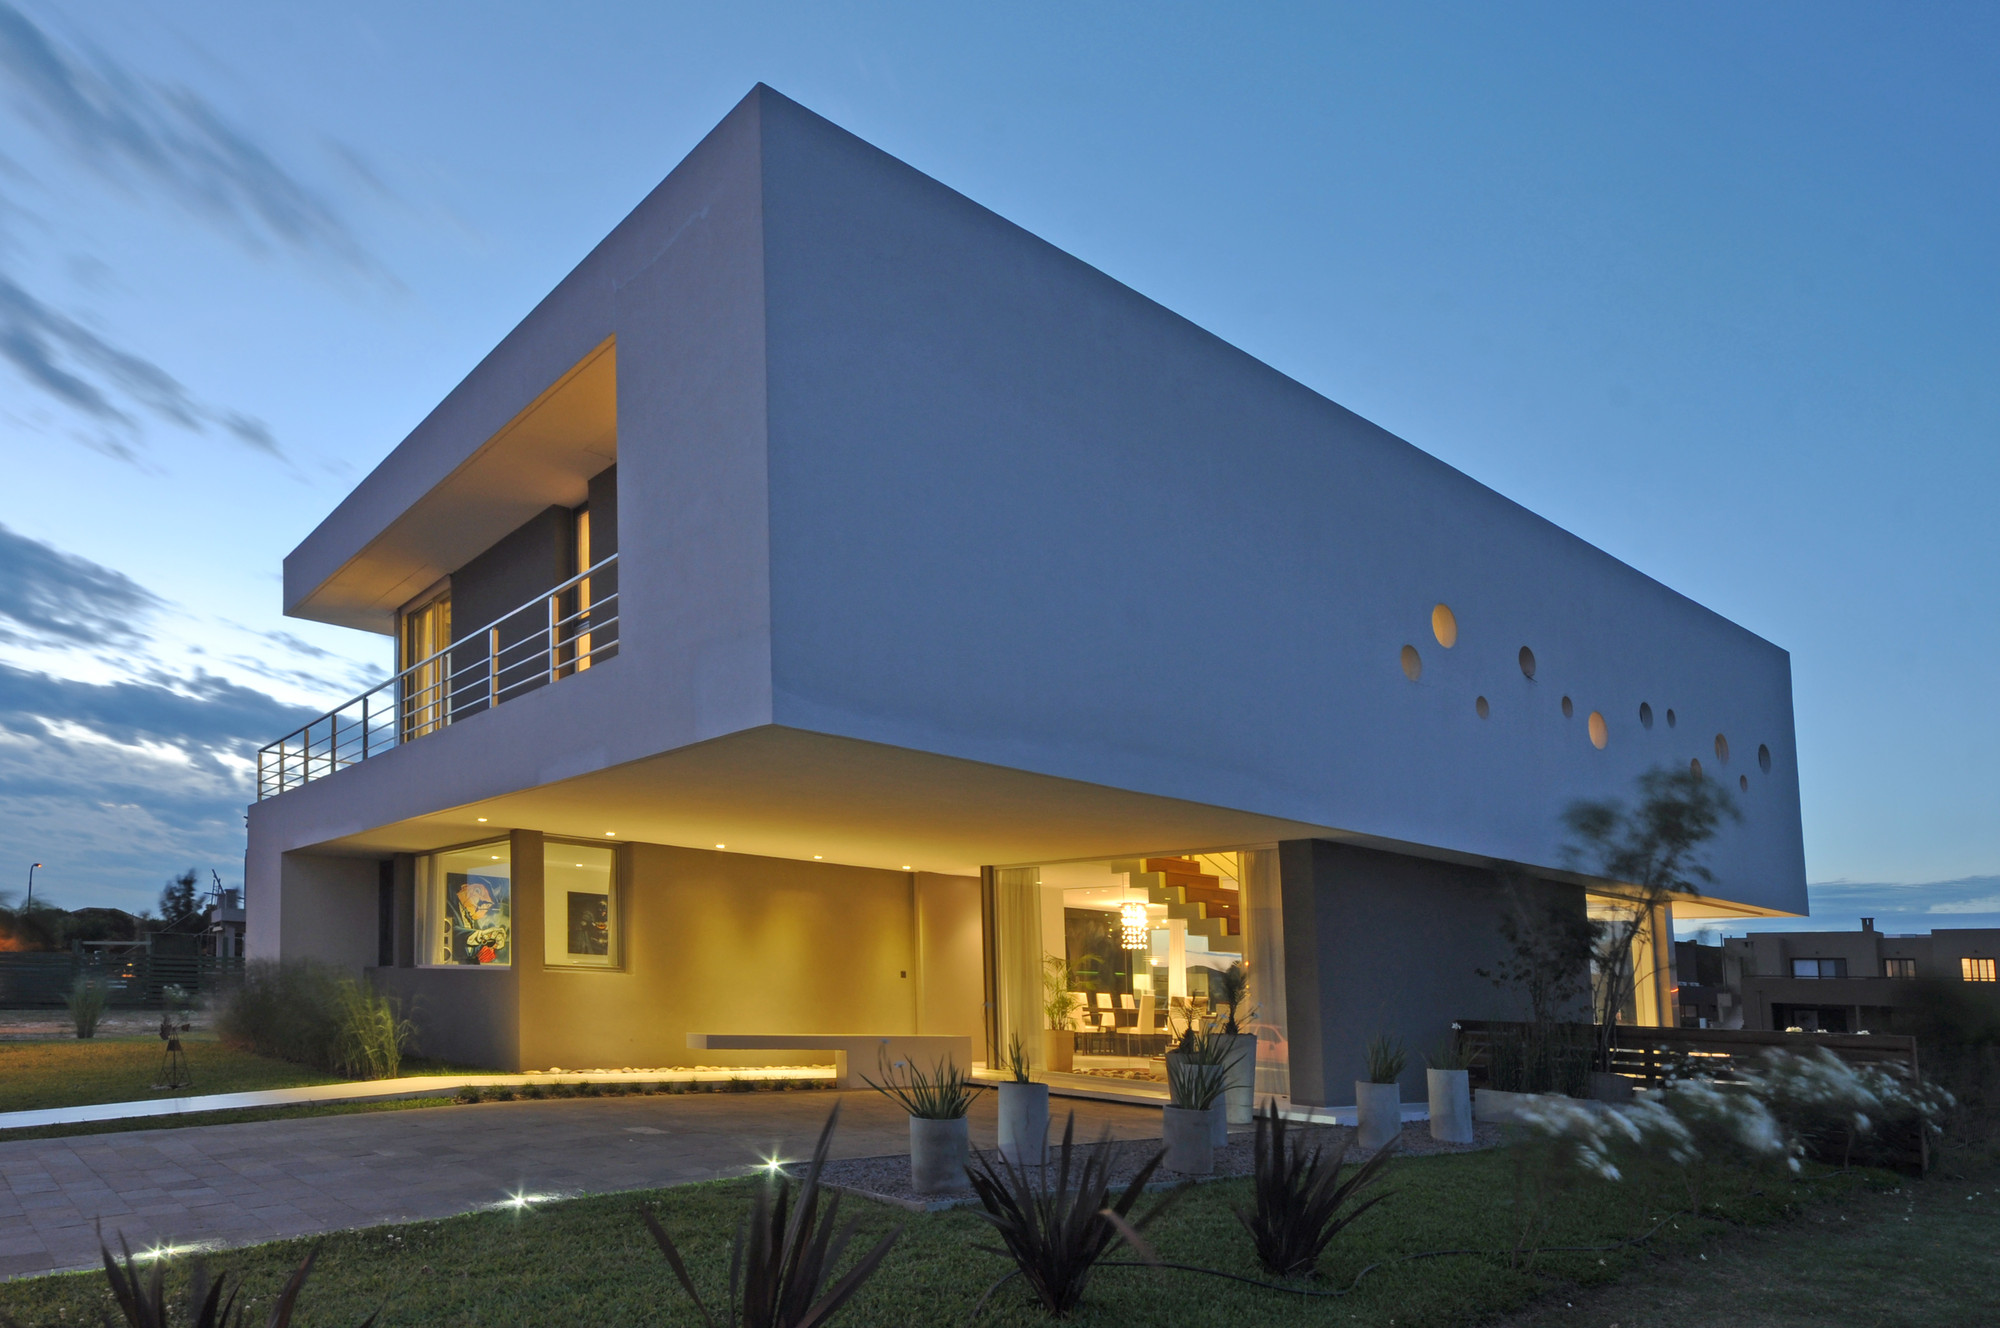 Casa Cabo / Vanguarda Architects